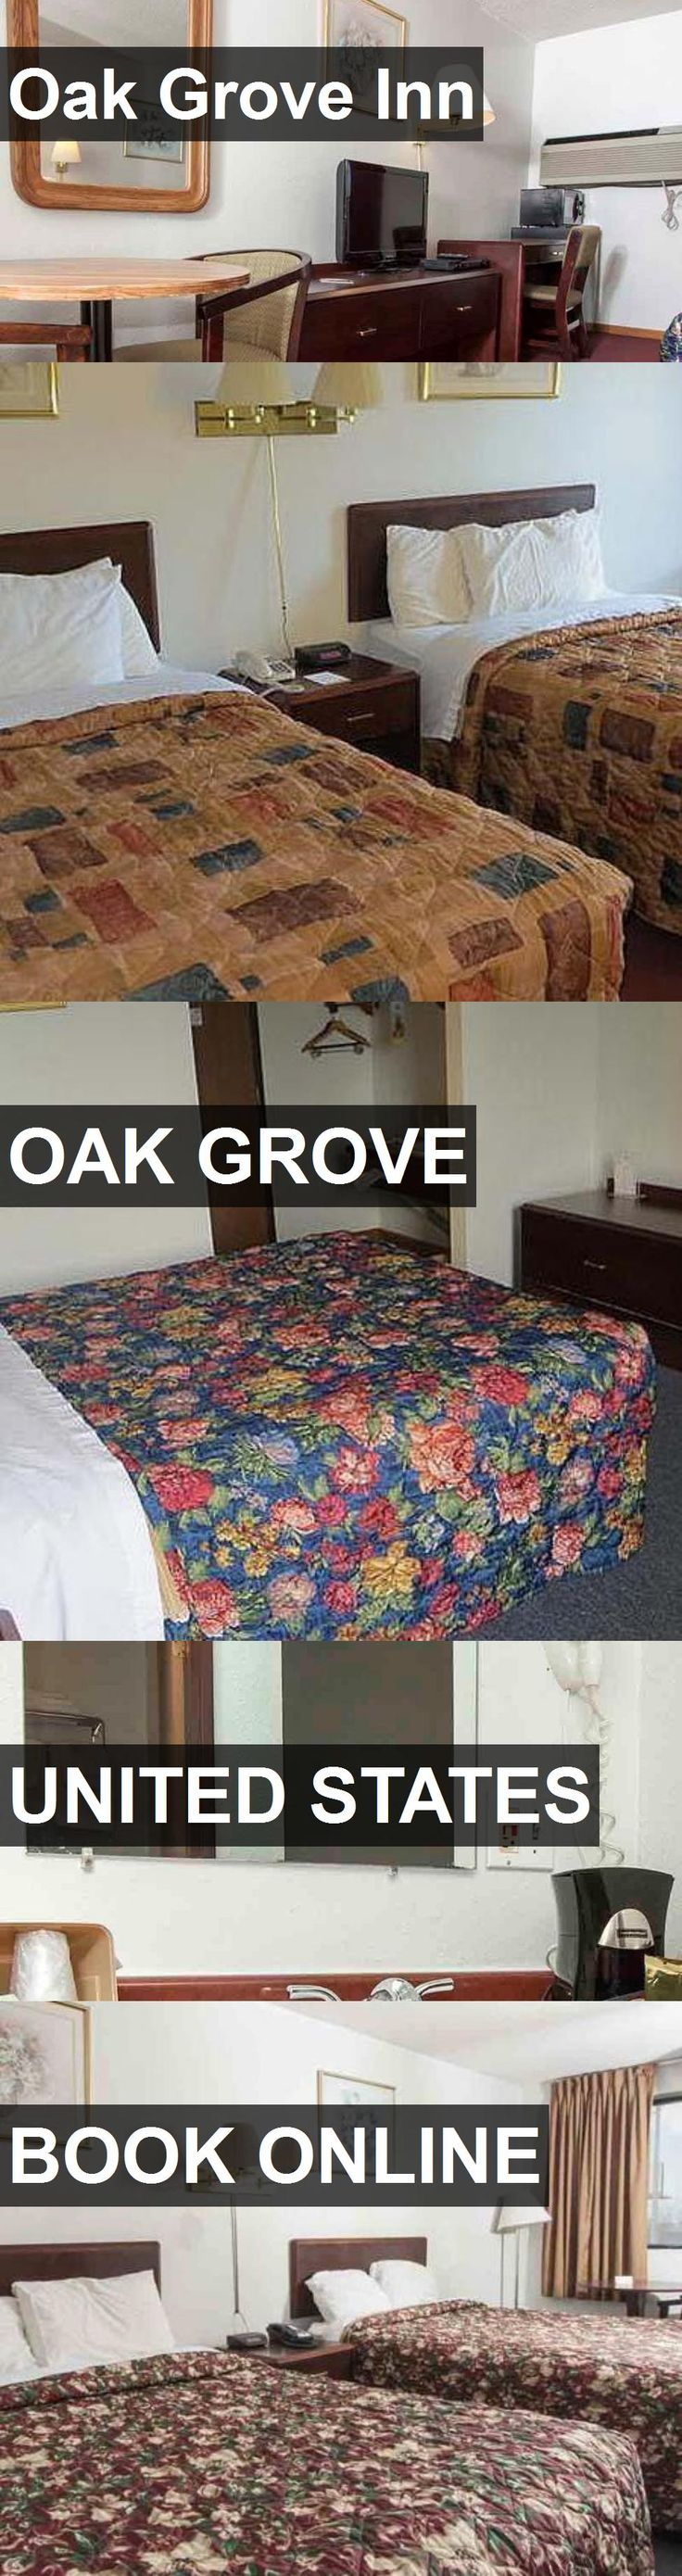 Hotel Oak Grove Inn in Oak Grove, United States. For more information, photos, reviews and best prices please follow the link. #UnitedStates #OakGrove #travel #vacation #hotel